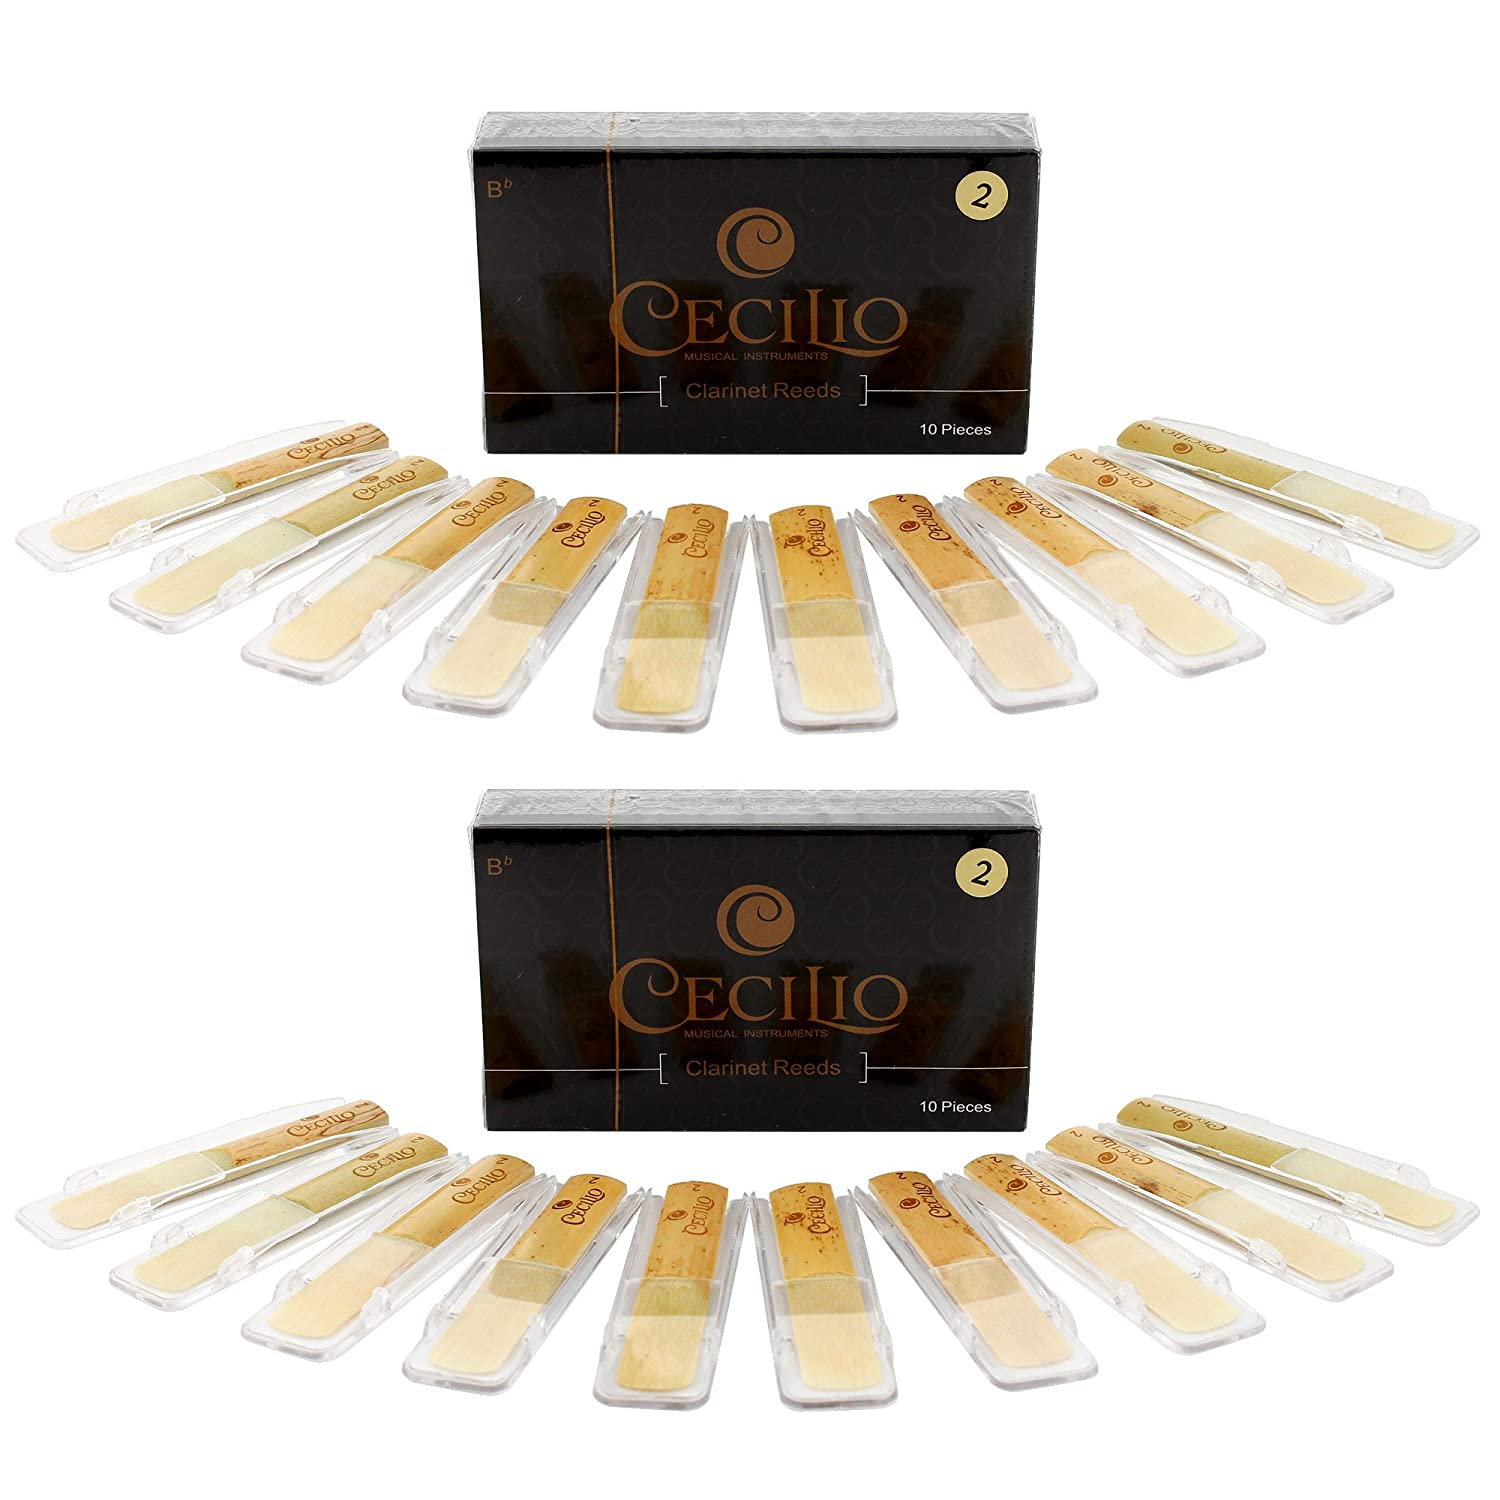 Cecilio Clarinet Reeds, TWO 10-pack with Individual Plastic Case, Strength 2.0 (Total of 20 Reeds) Cecilio Musical Instruments Reedsx2-CT_2.0